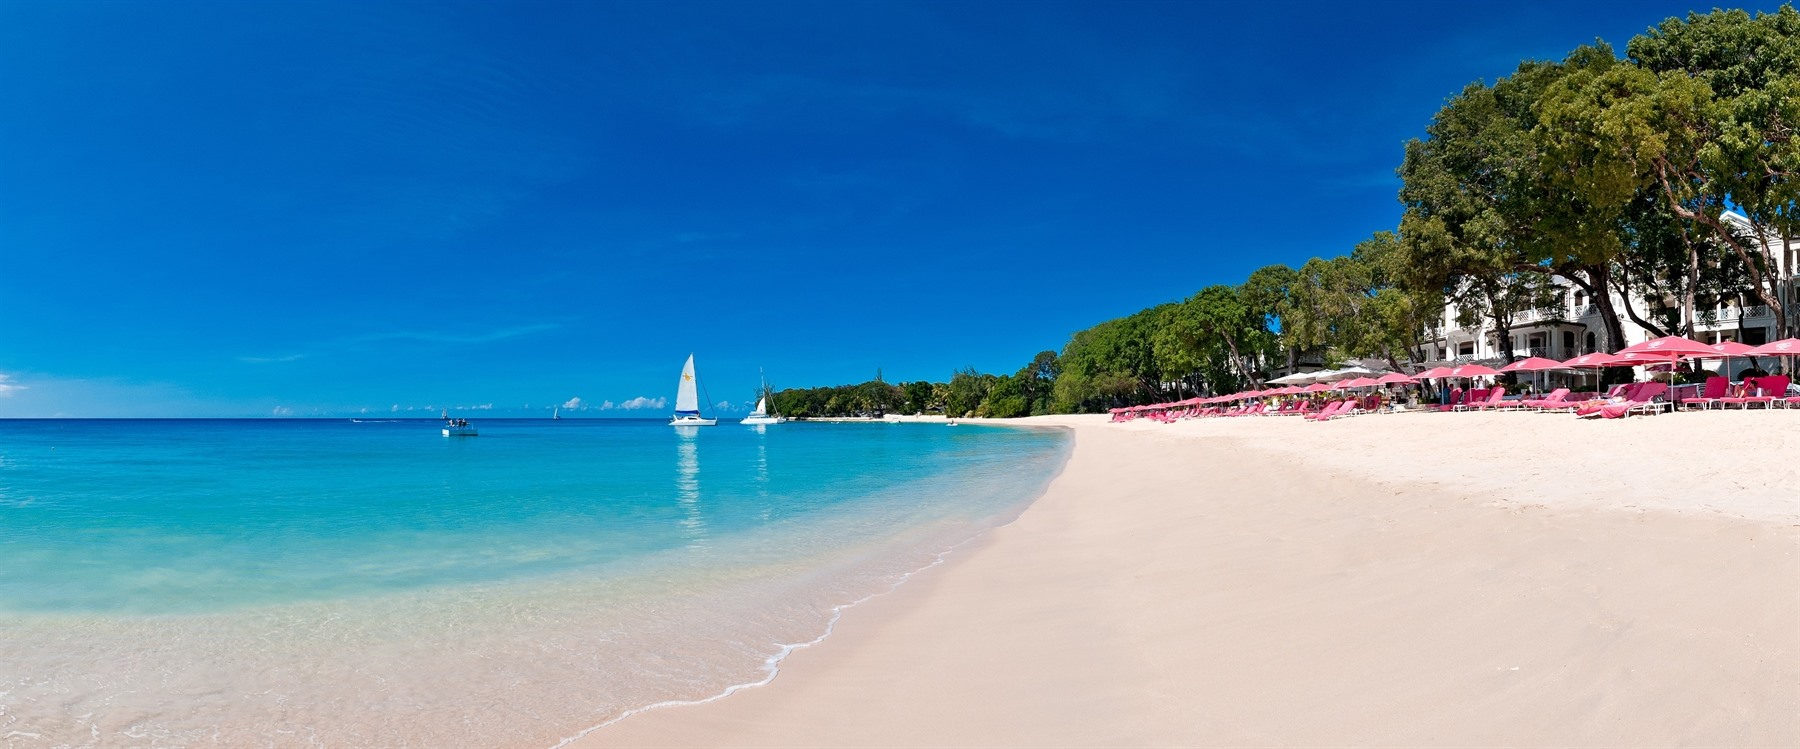 the beach at sandy lane barbados